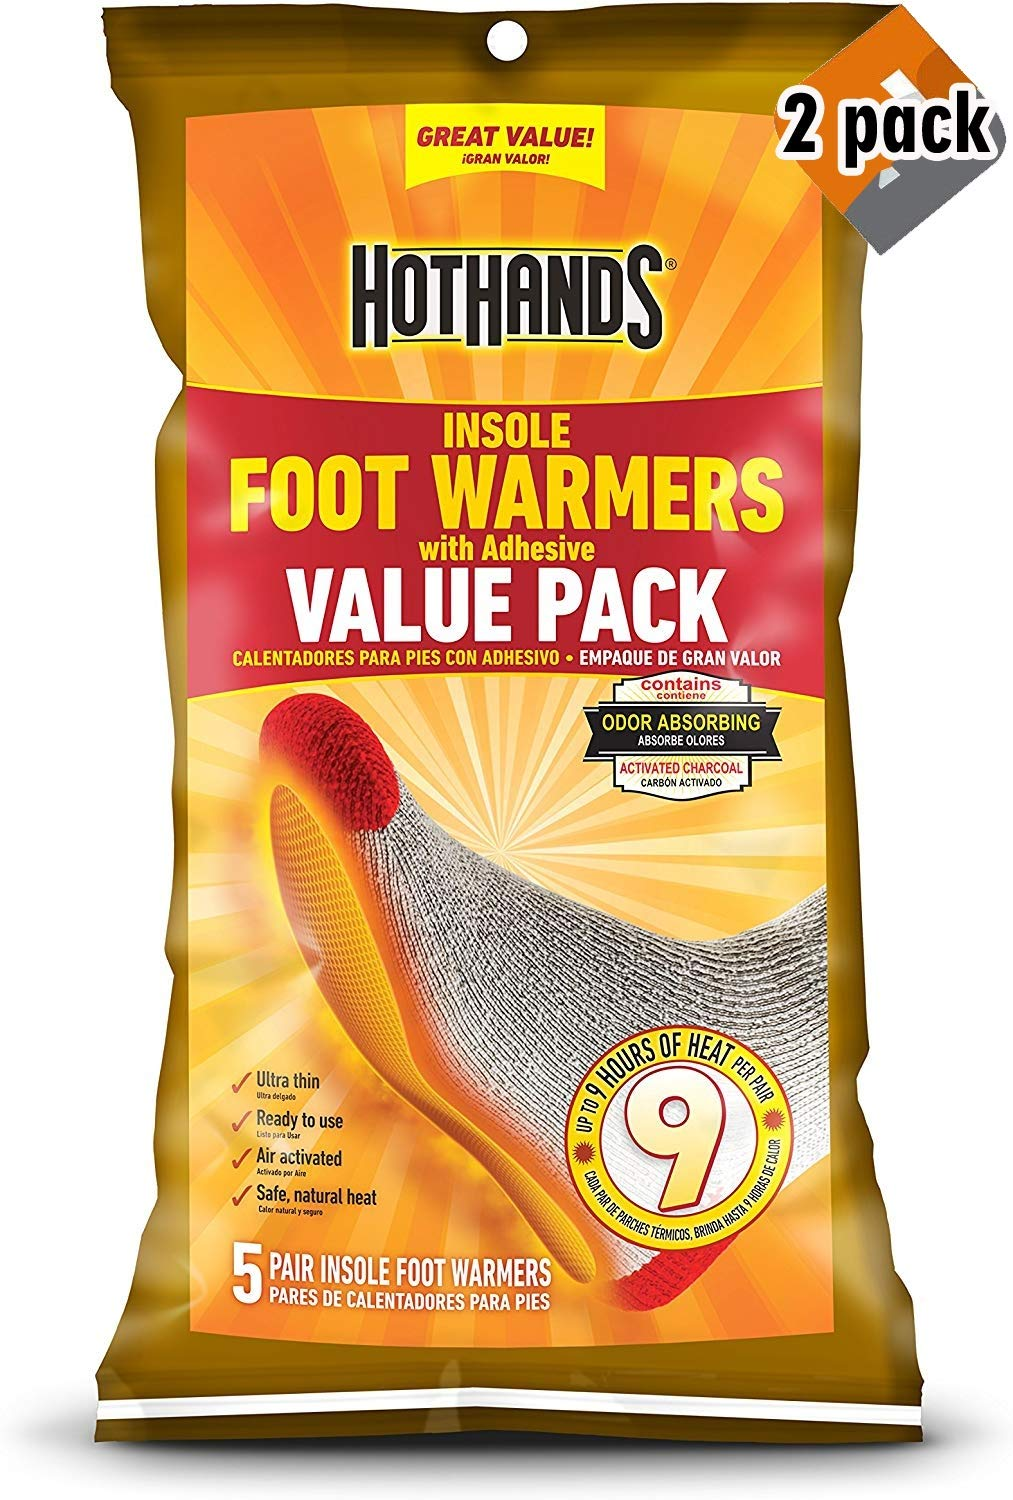 HotHands Insole Foot Warmer - 2 Pack by HotHands